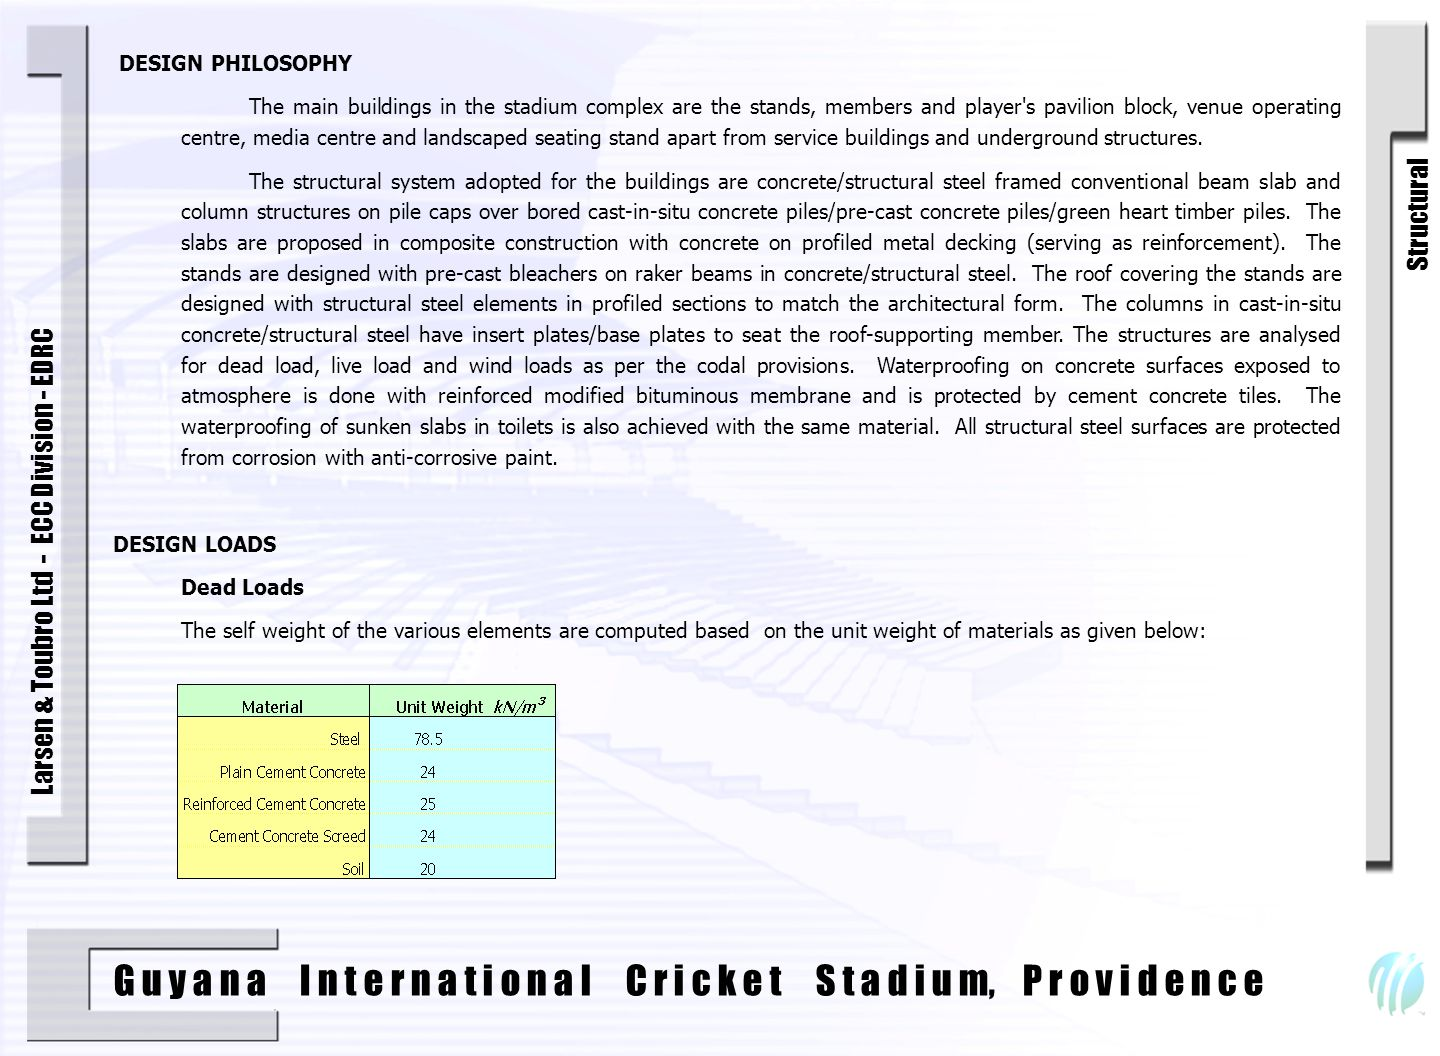 G u y a n a I n t e r n a t i o n a l C r i c k e t S t a d i u m, P r o v i d e n c e Larsen & Toubro Ltd - ECC Division - EDRC 1 DESIGN PHILOSOPHY The main buildings in the stadium complex are the stands, members and player s pavilion block, venue operating centre, media centre and landscaped seating stand apart from service buildings and underground structures.